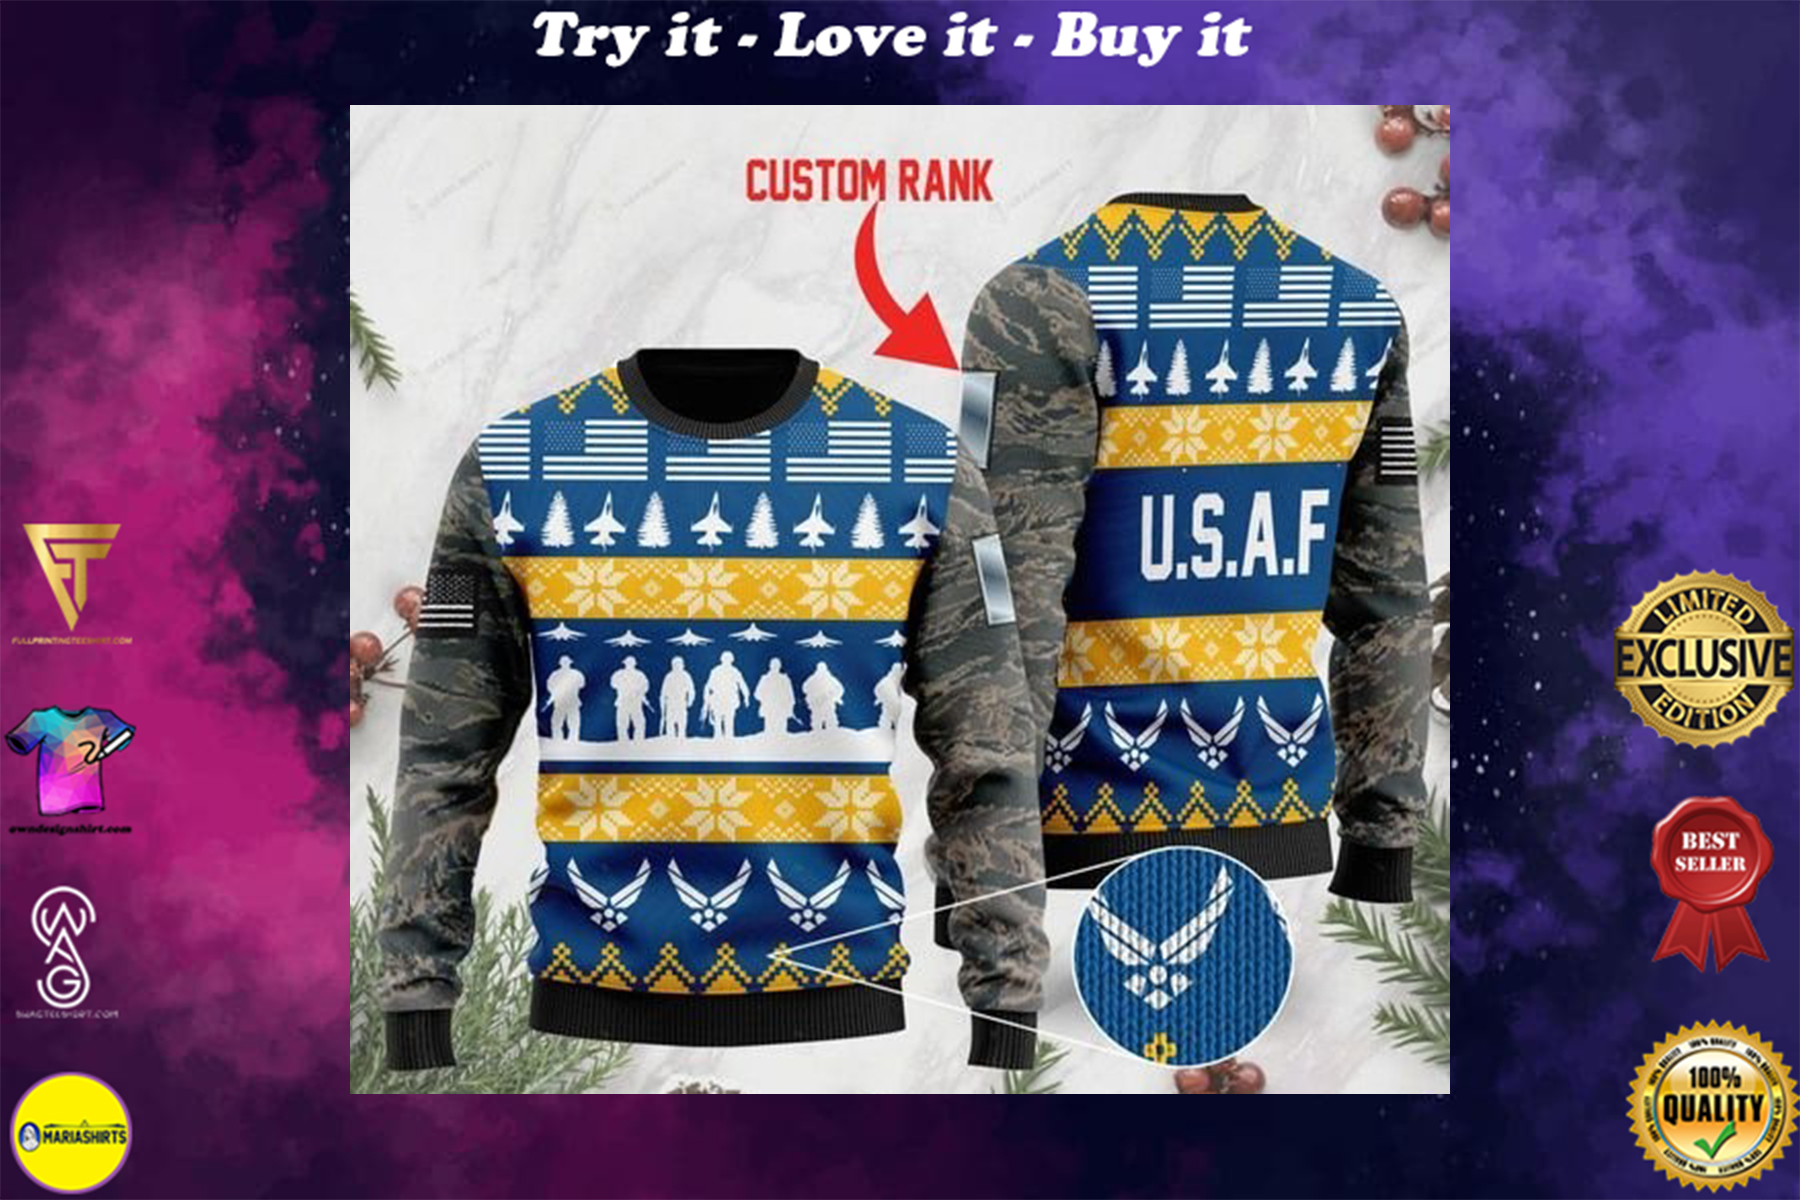 custom rank the united states air force full printing ugly sweater